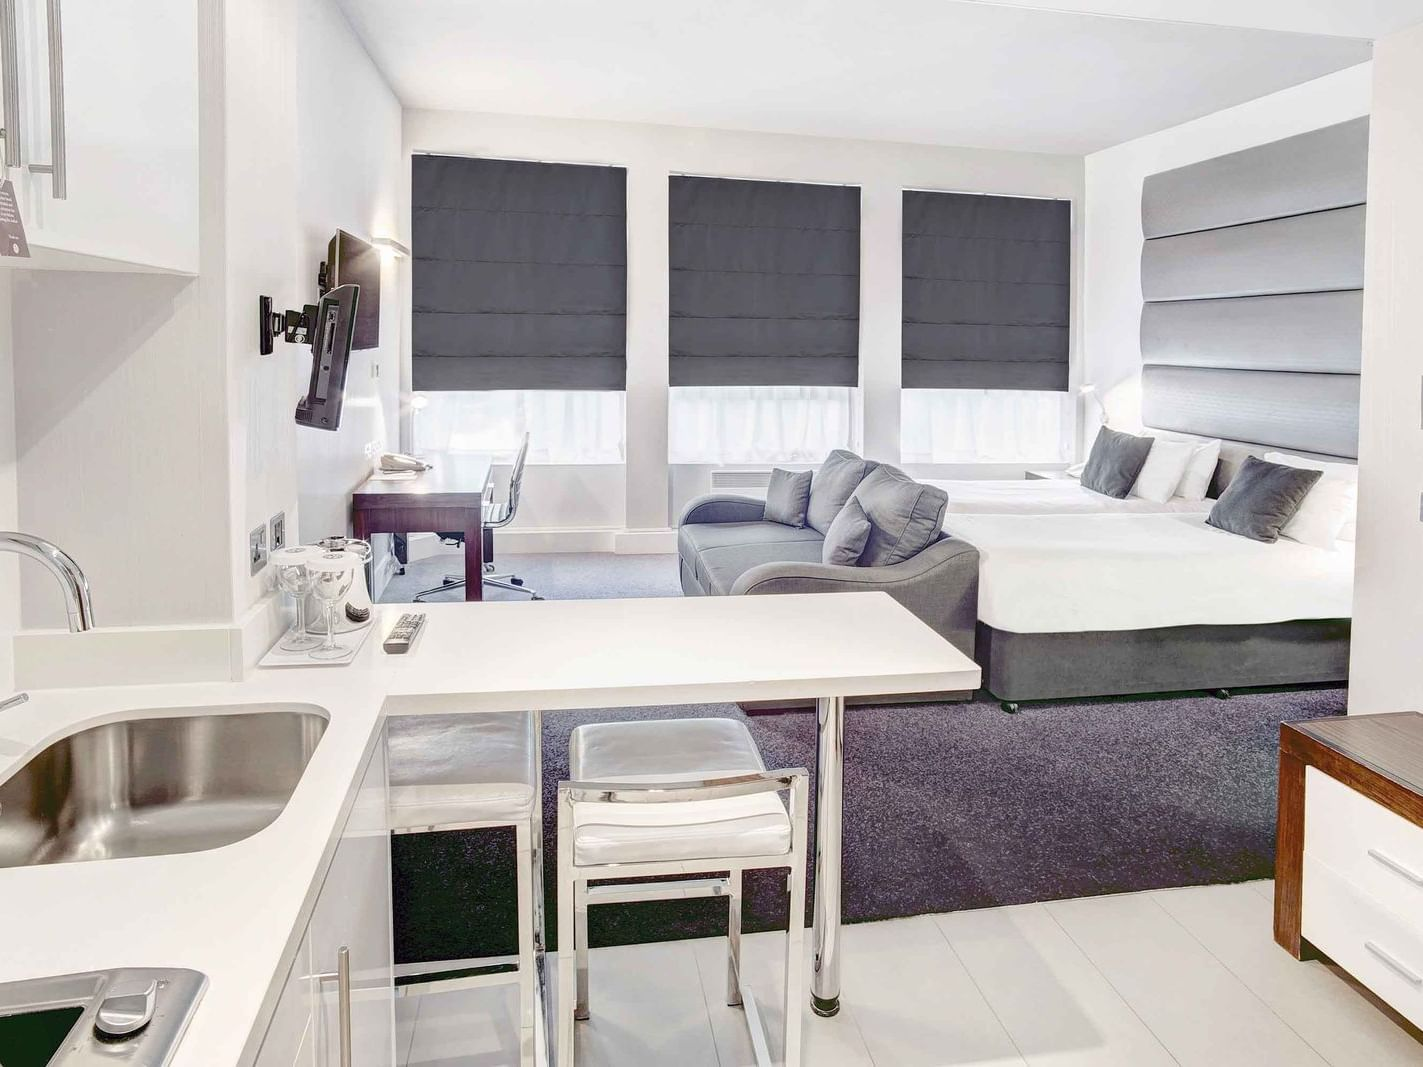 The Two Single Beds Studio at Sandman Signature Newcastle Hotel with two single beds (with premium pillow-top), one pull-out sofa bed, a flat-screen tv and a pantry with white pantry cupboards and furniture